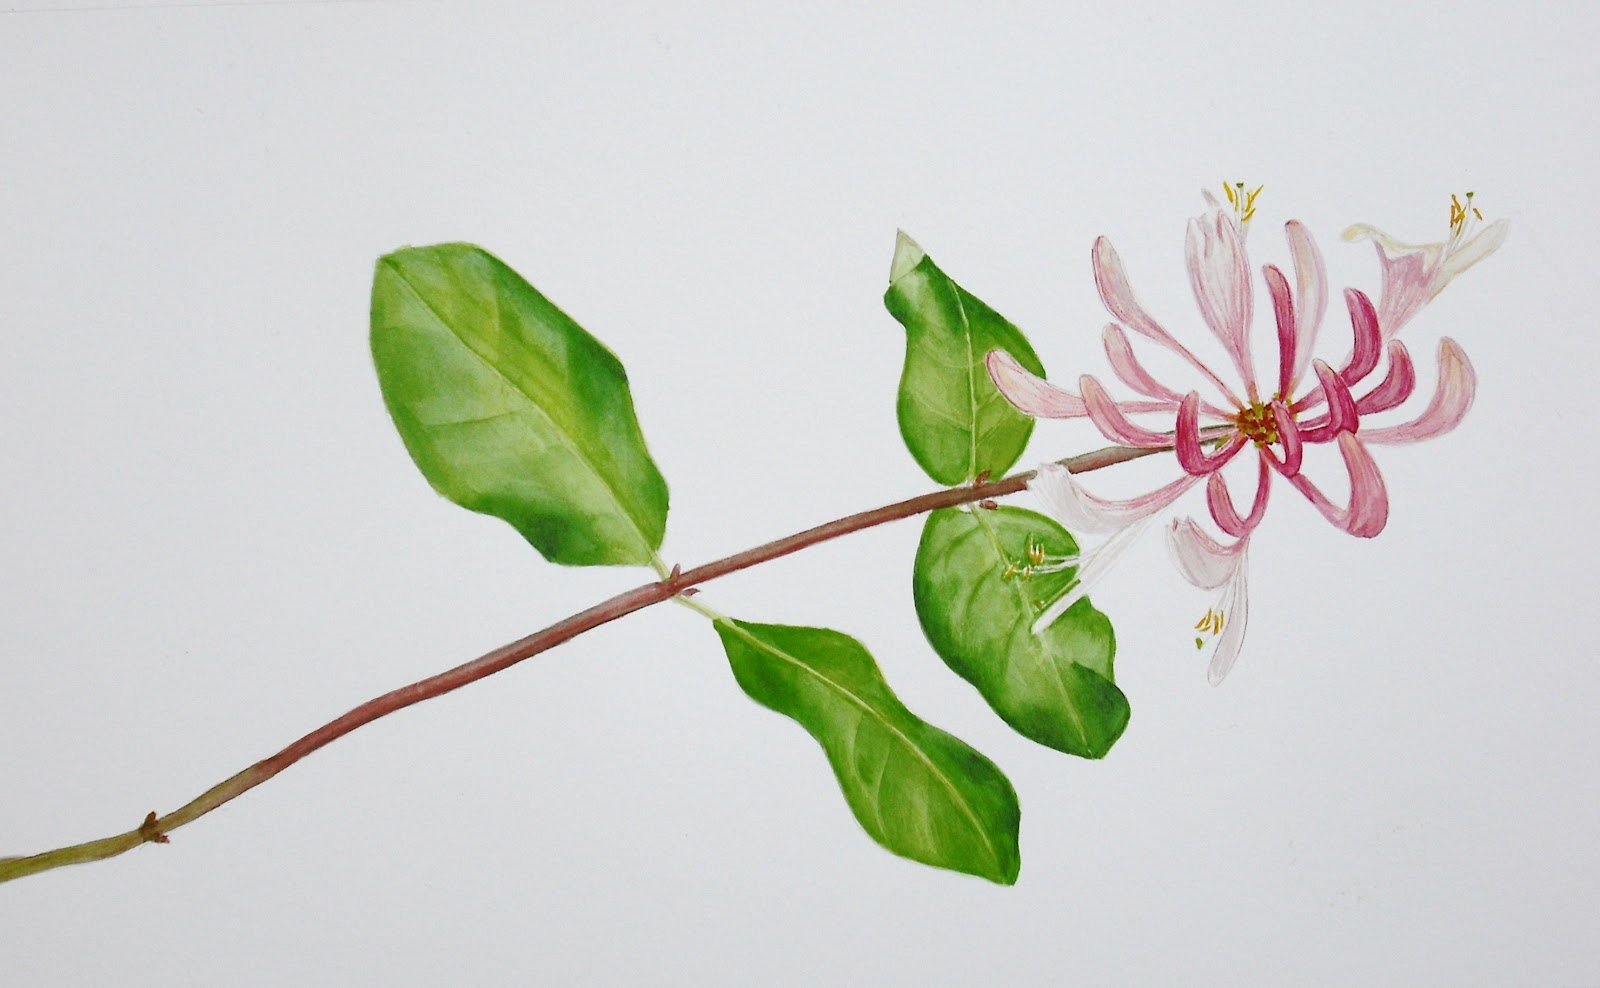 Honeysuckle Flower Line Drawing : Drawings of botanical things honeysuckle